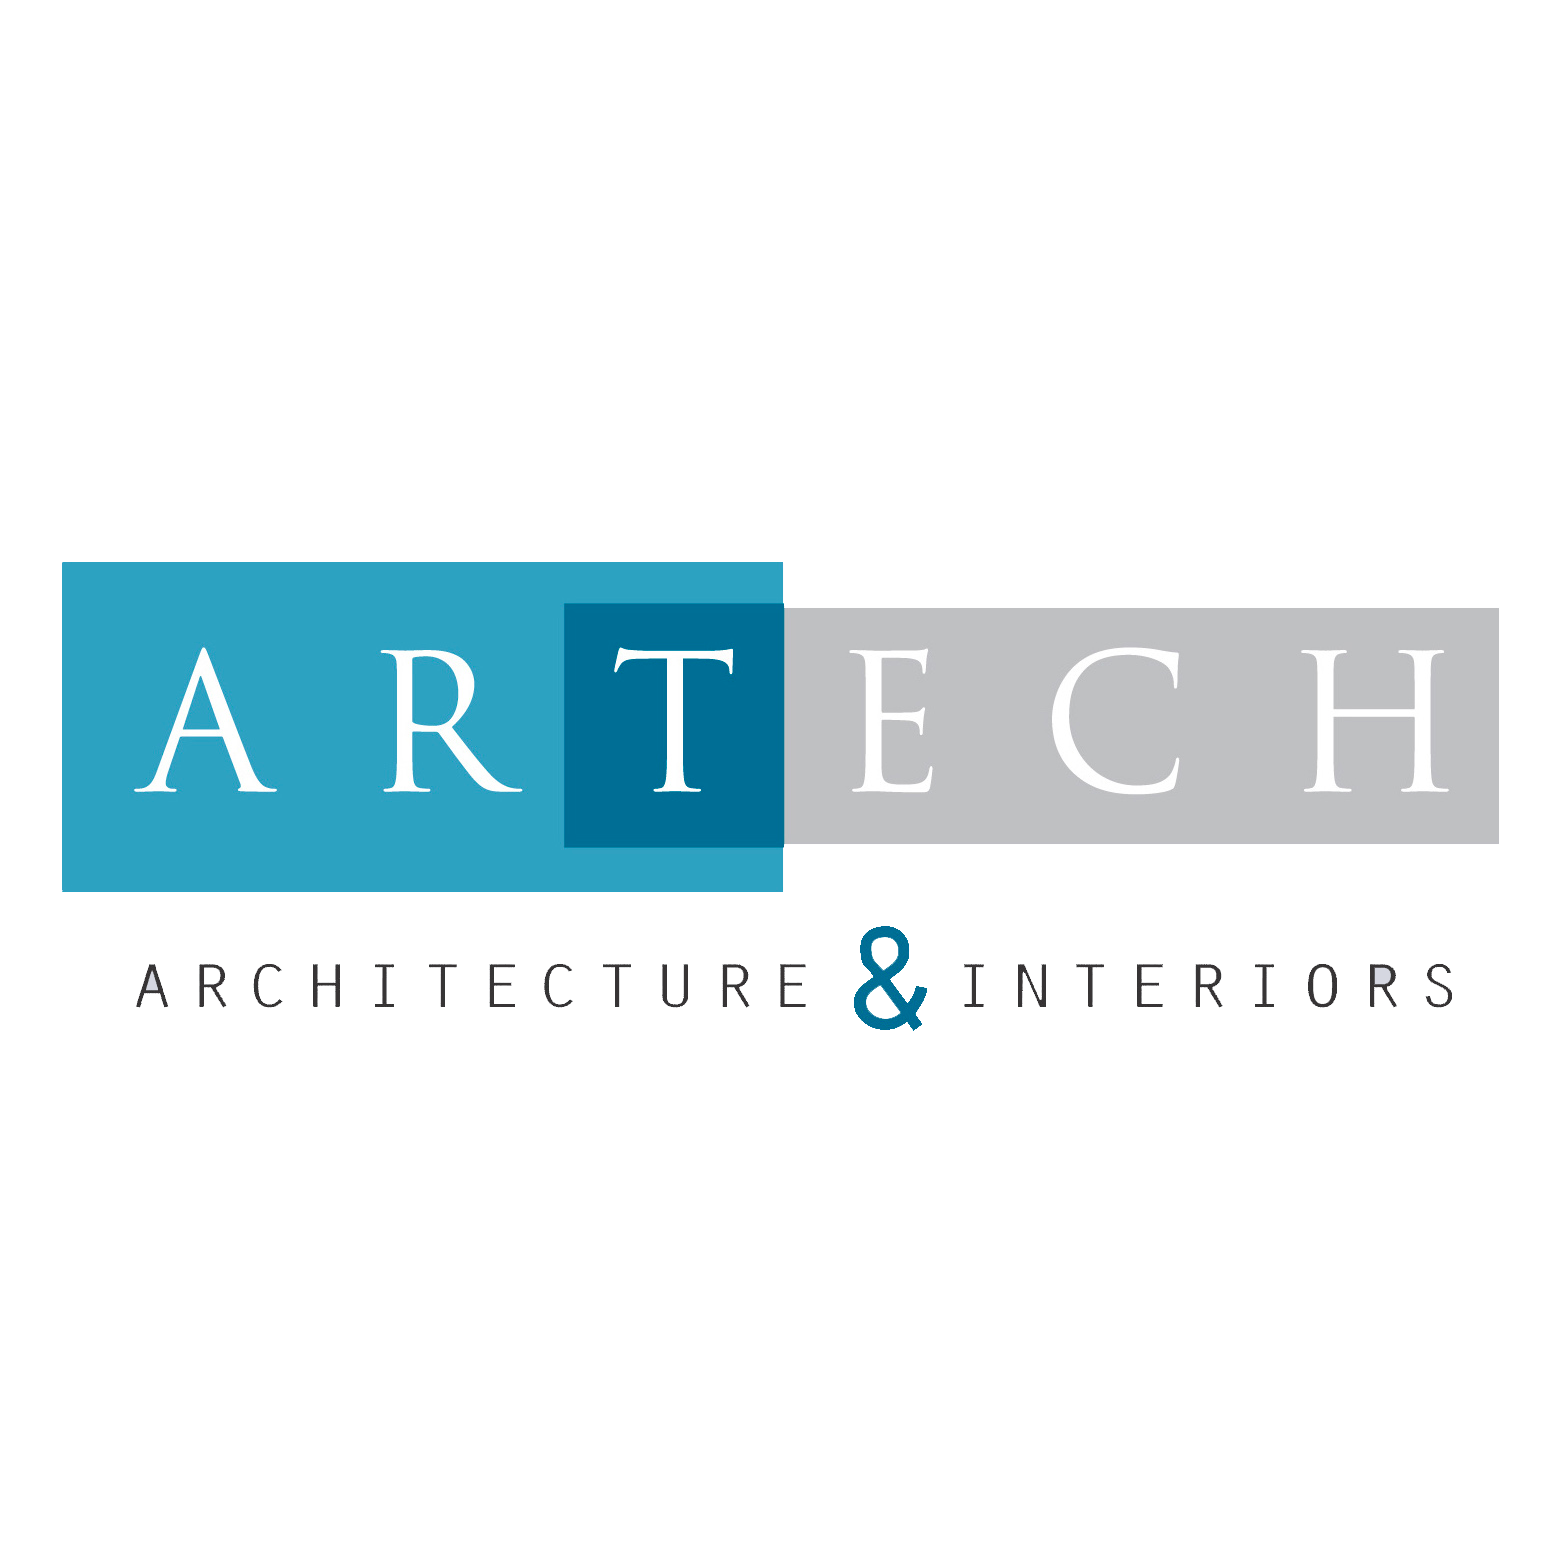 Artech Design Group